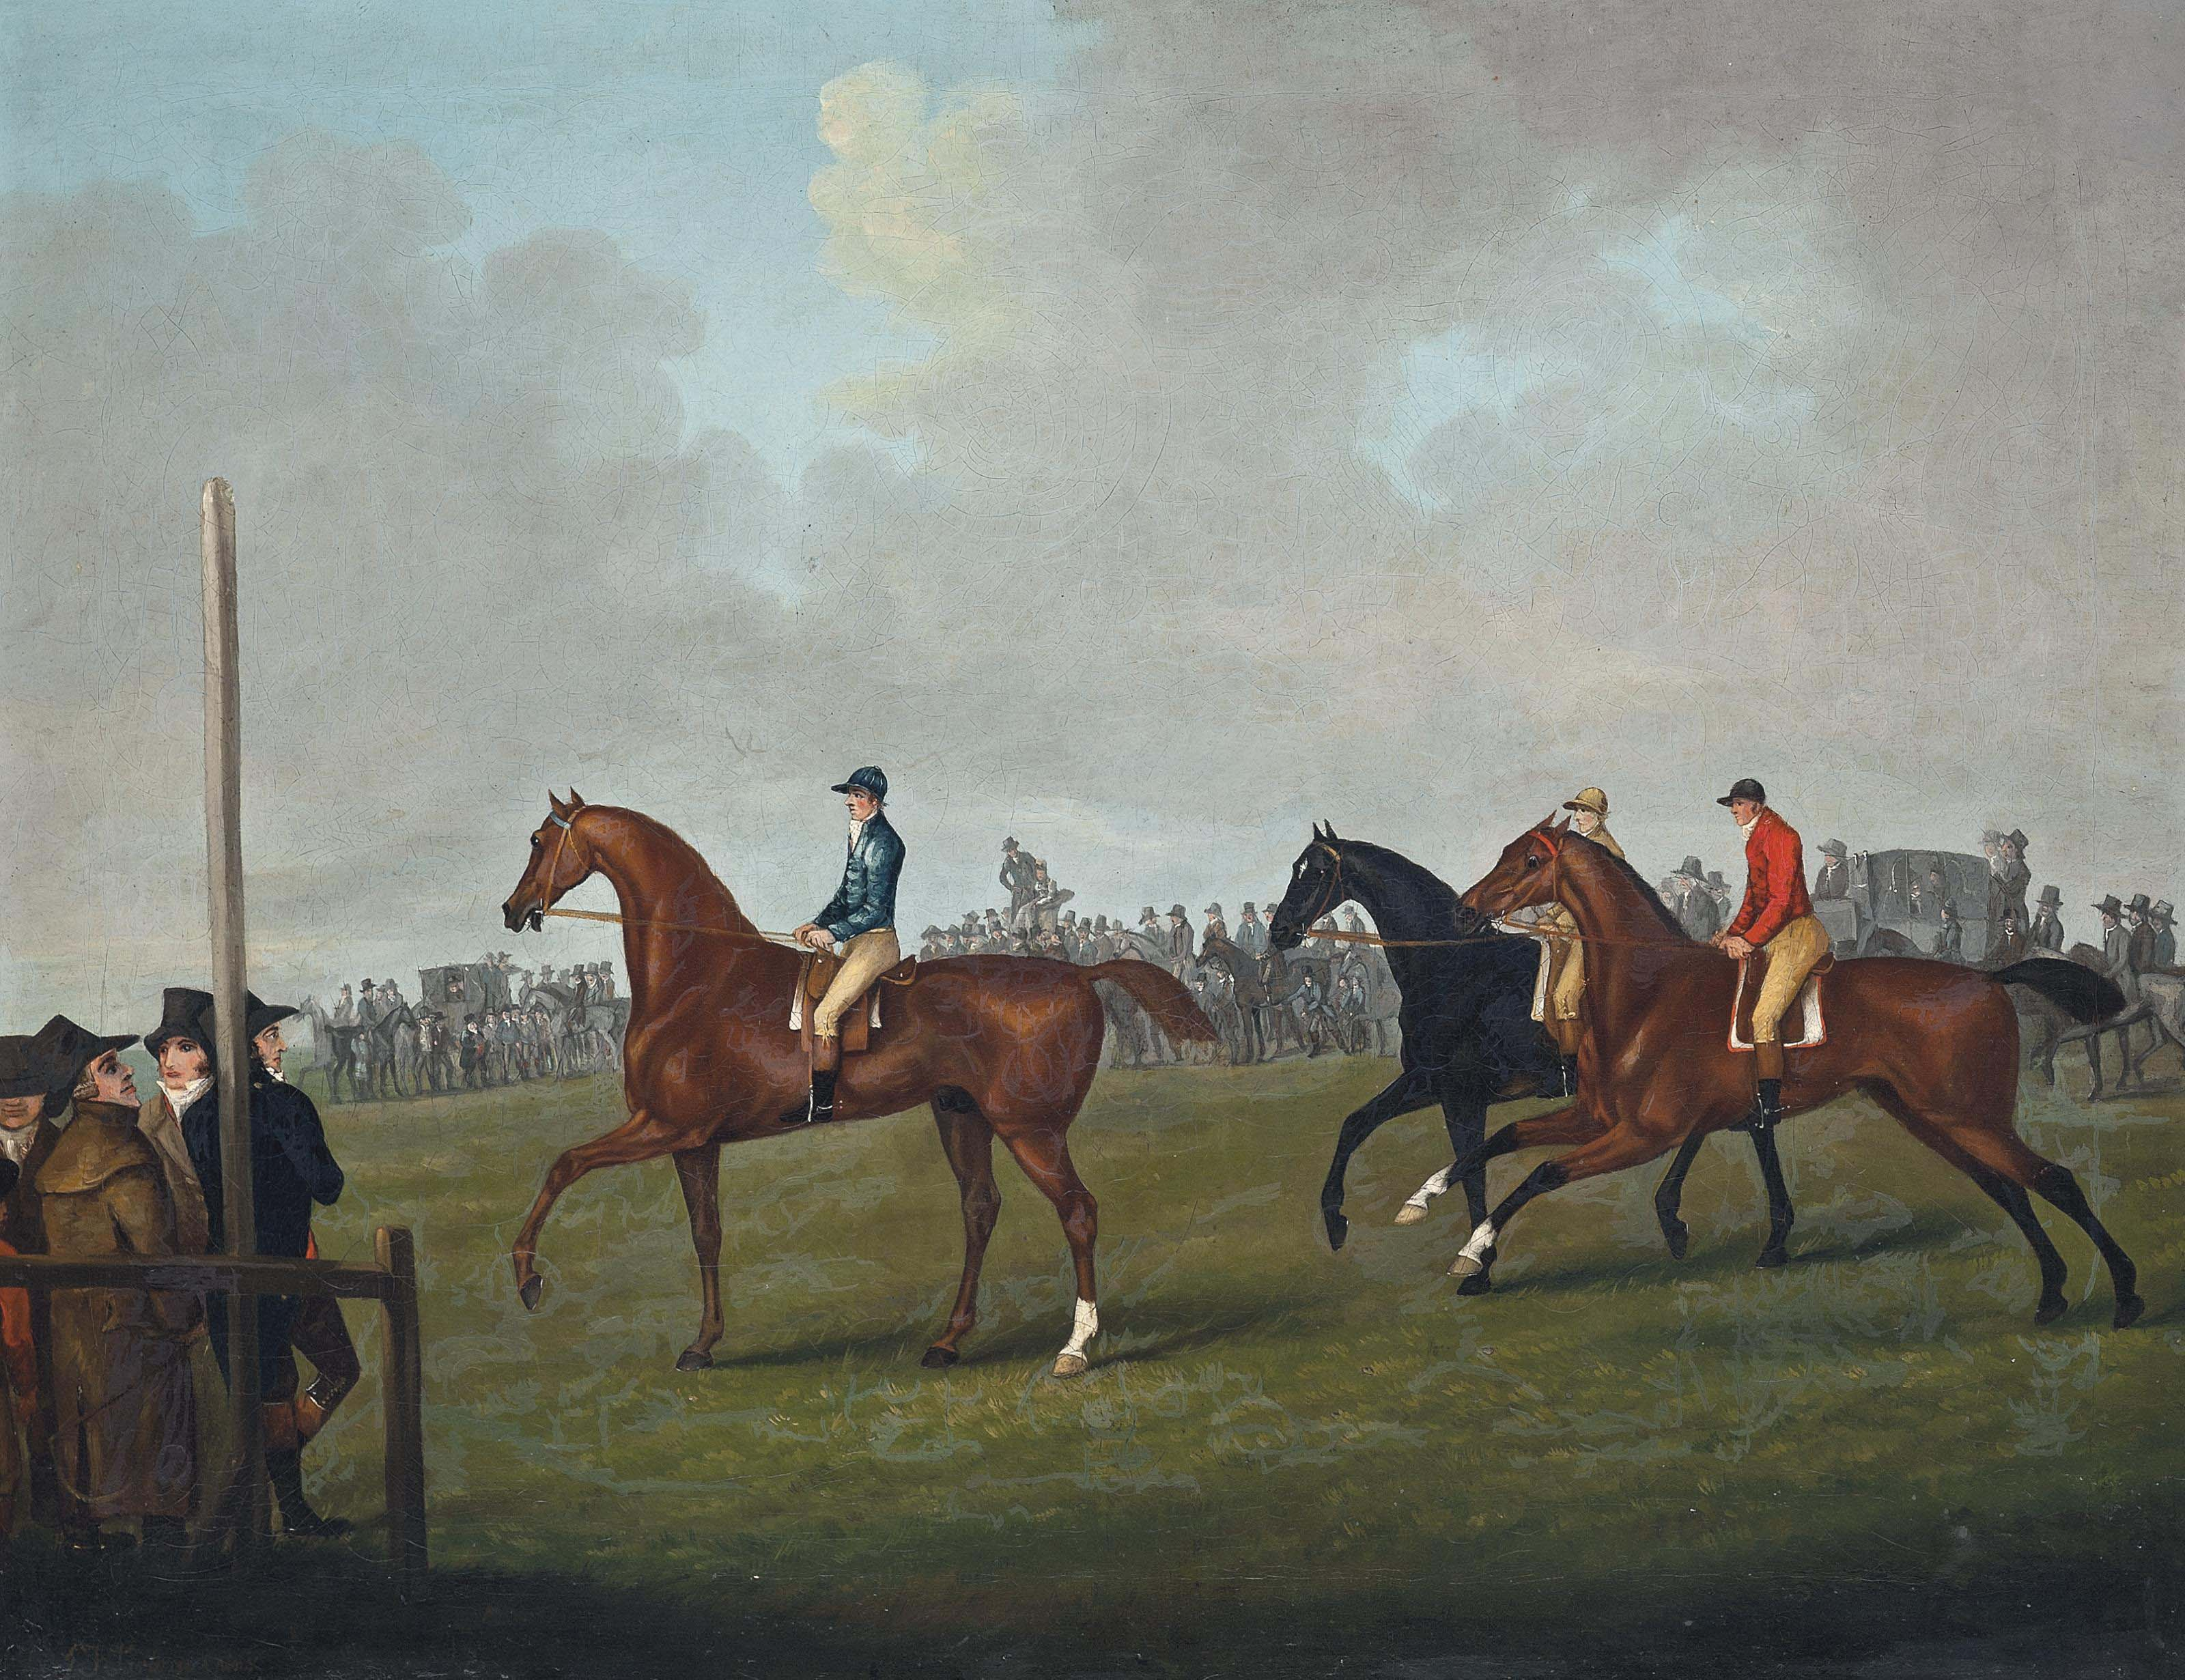 At the start, Newmarket